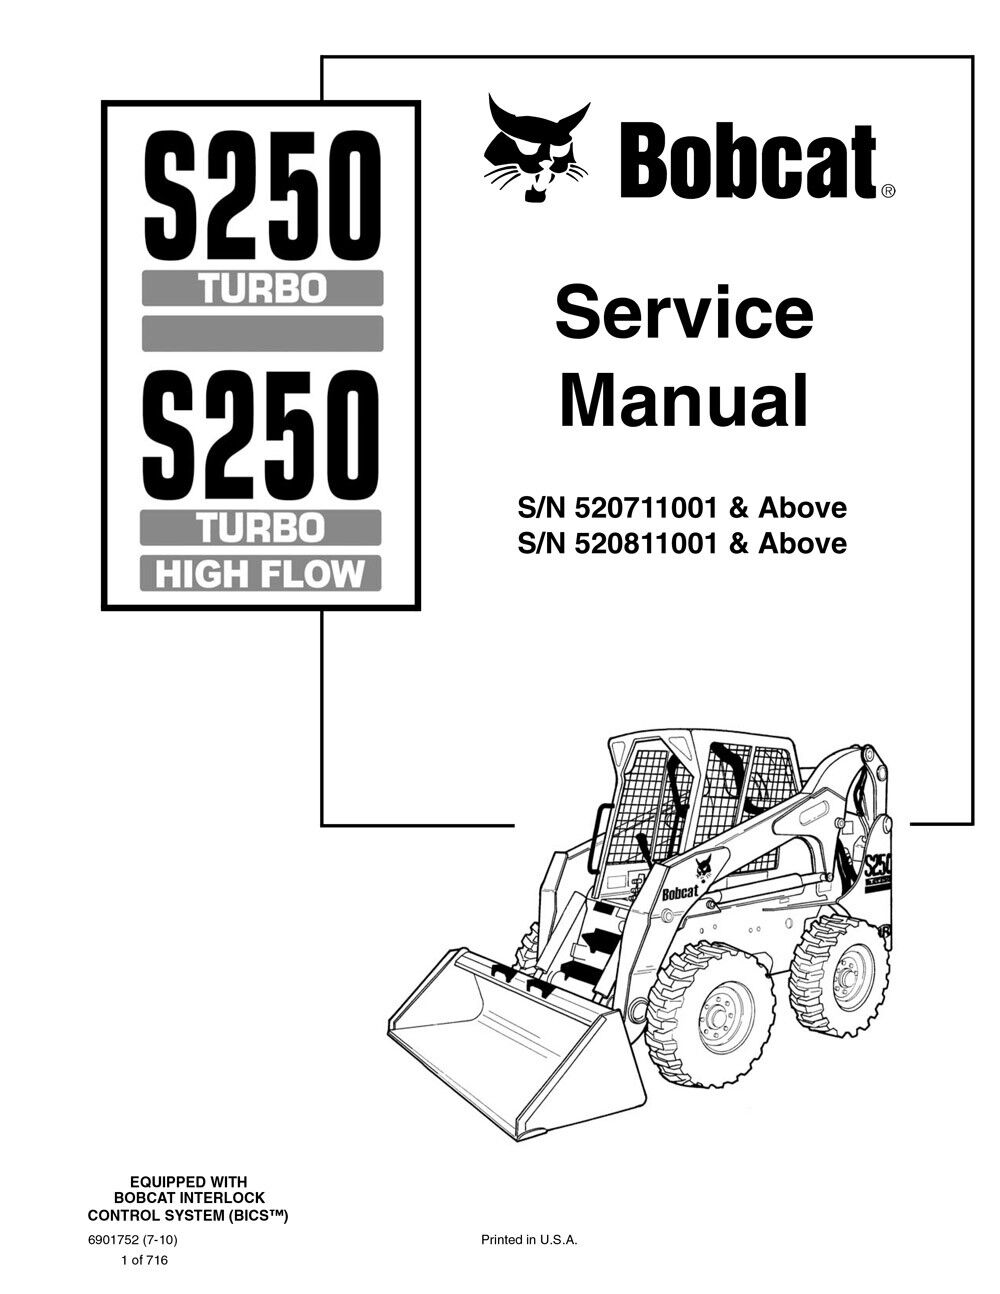 Bobcat S250 Turbo High Flow New and 2010 Edition Repair